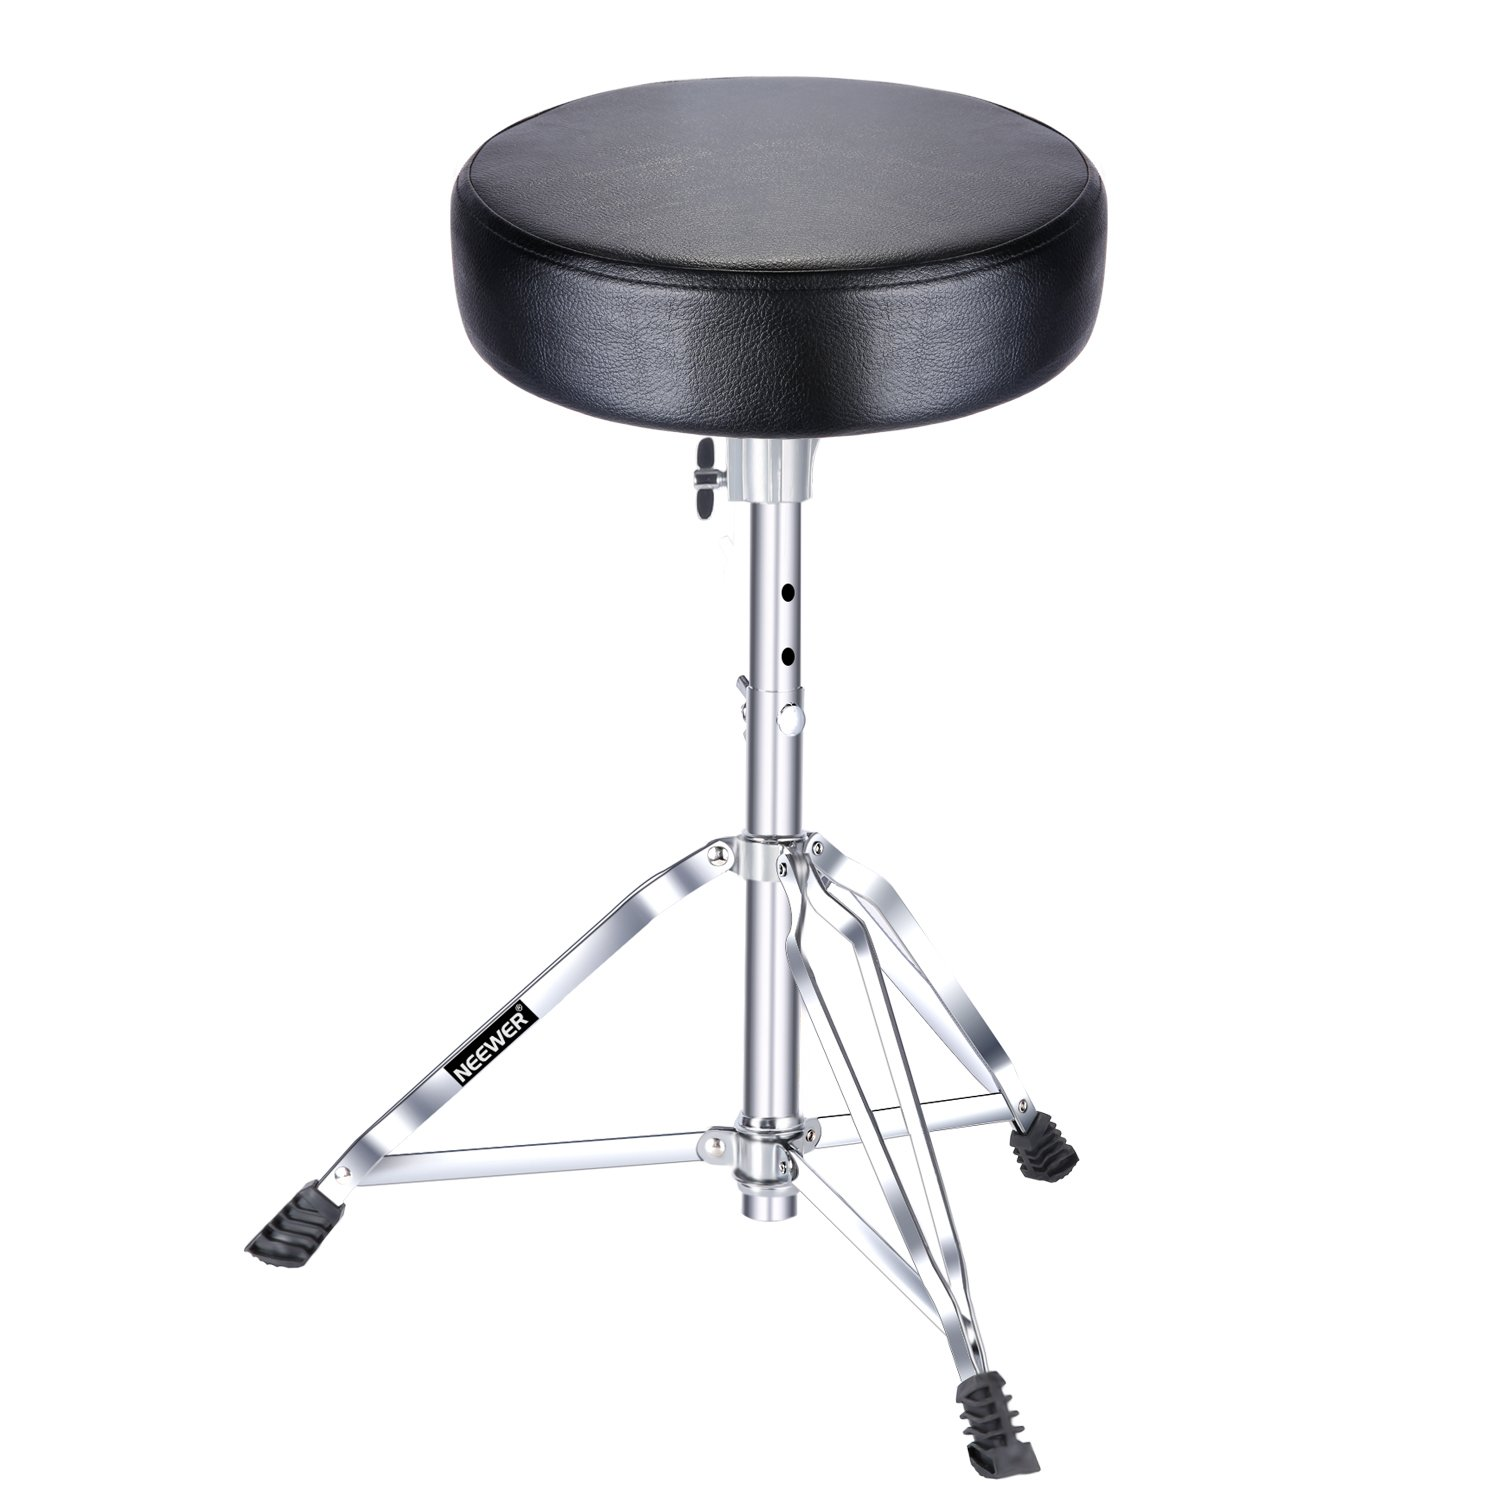 Neewer Stable Drum Throne - 19.3-23.2inches/49-59 centimeters Adjustable Height with Tripod Base, Double Brace Leg, Slip-Proof Rubber Feet, 11.8 -inch Round top, Black (NW-001)